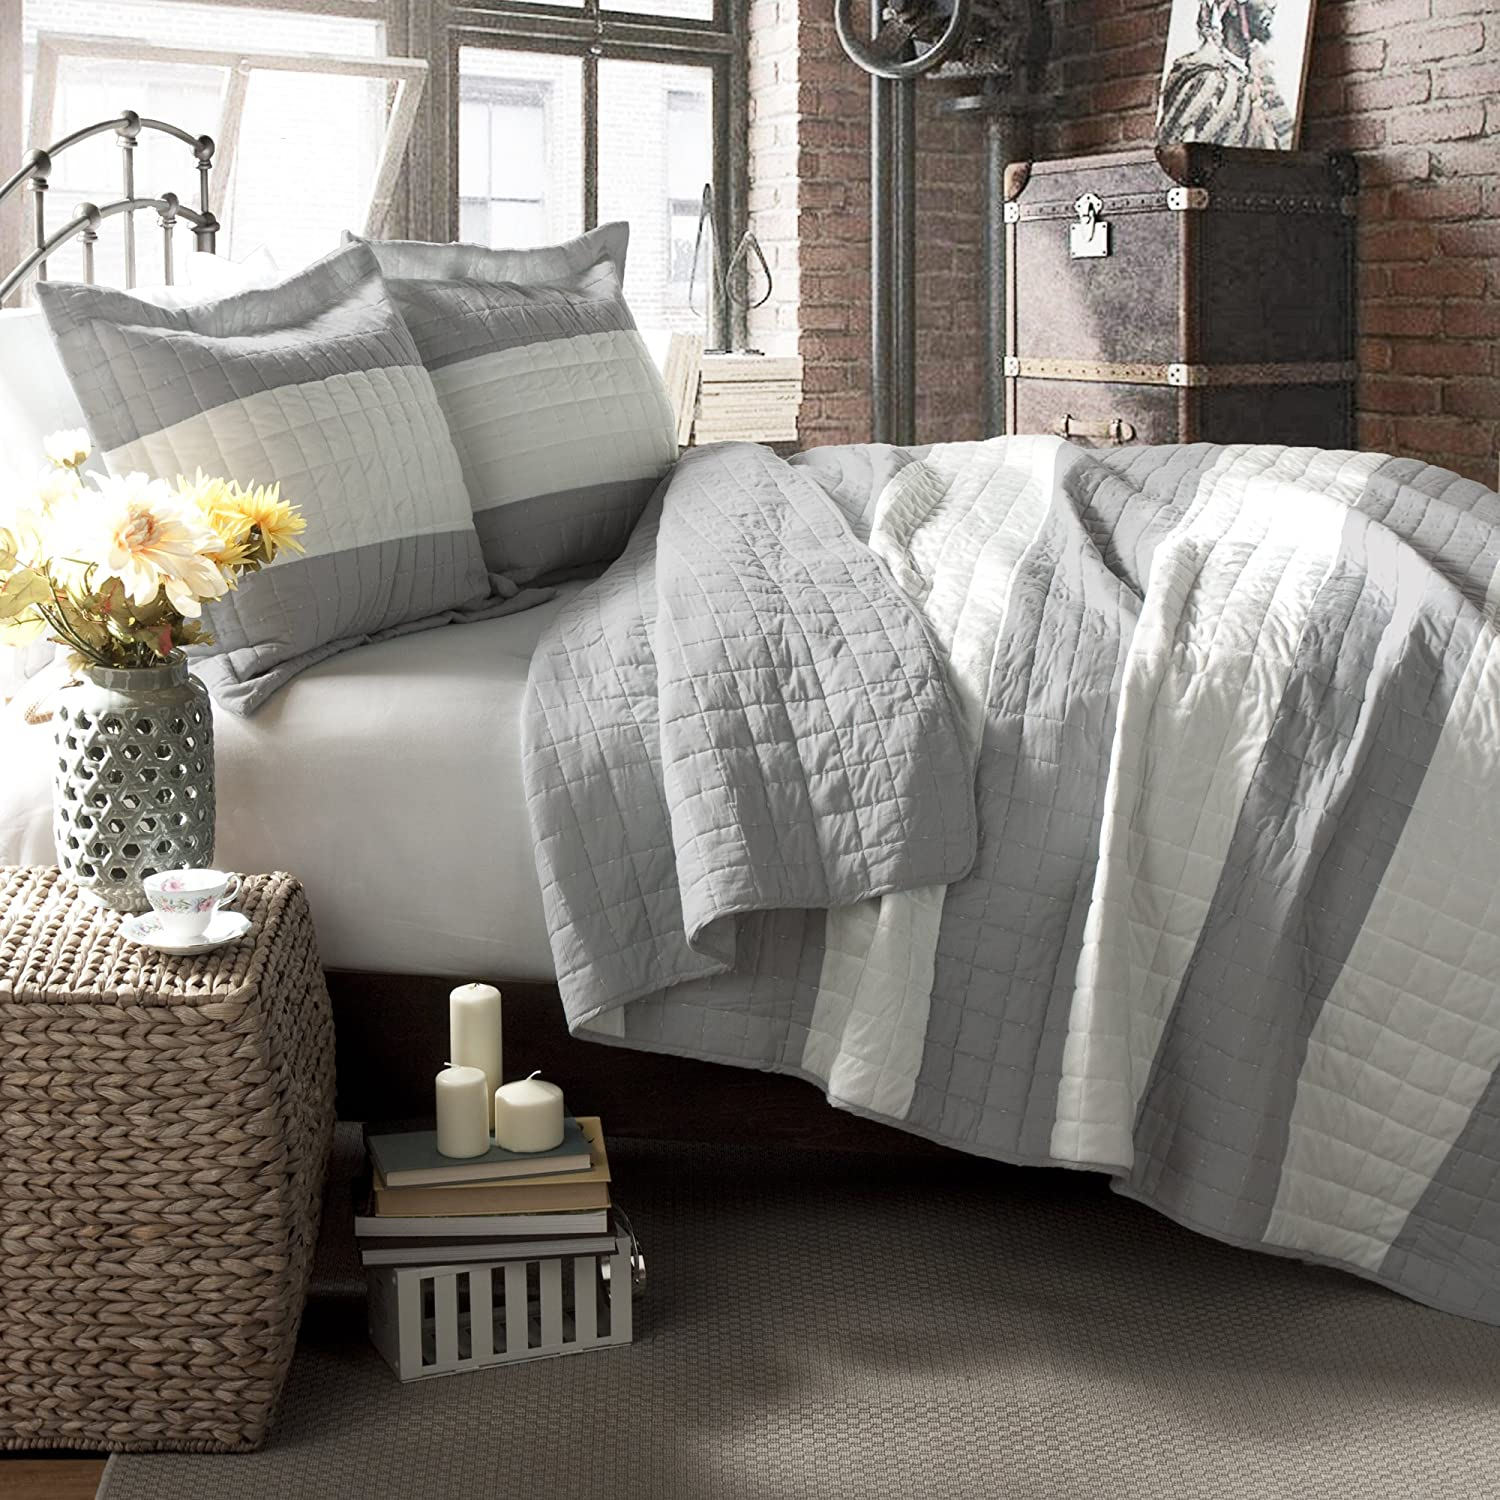 Lush Decor Berlin Stripe 3-Piece Quilt Set, Full/Queen, Gray